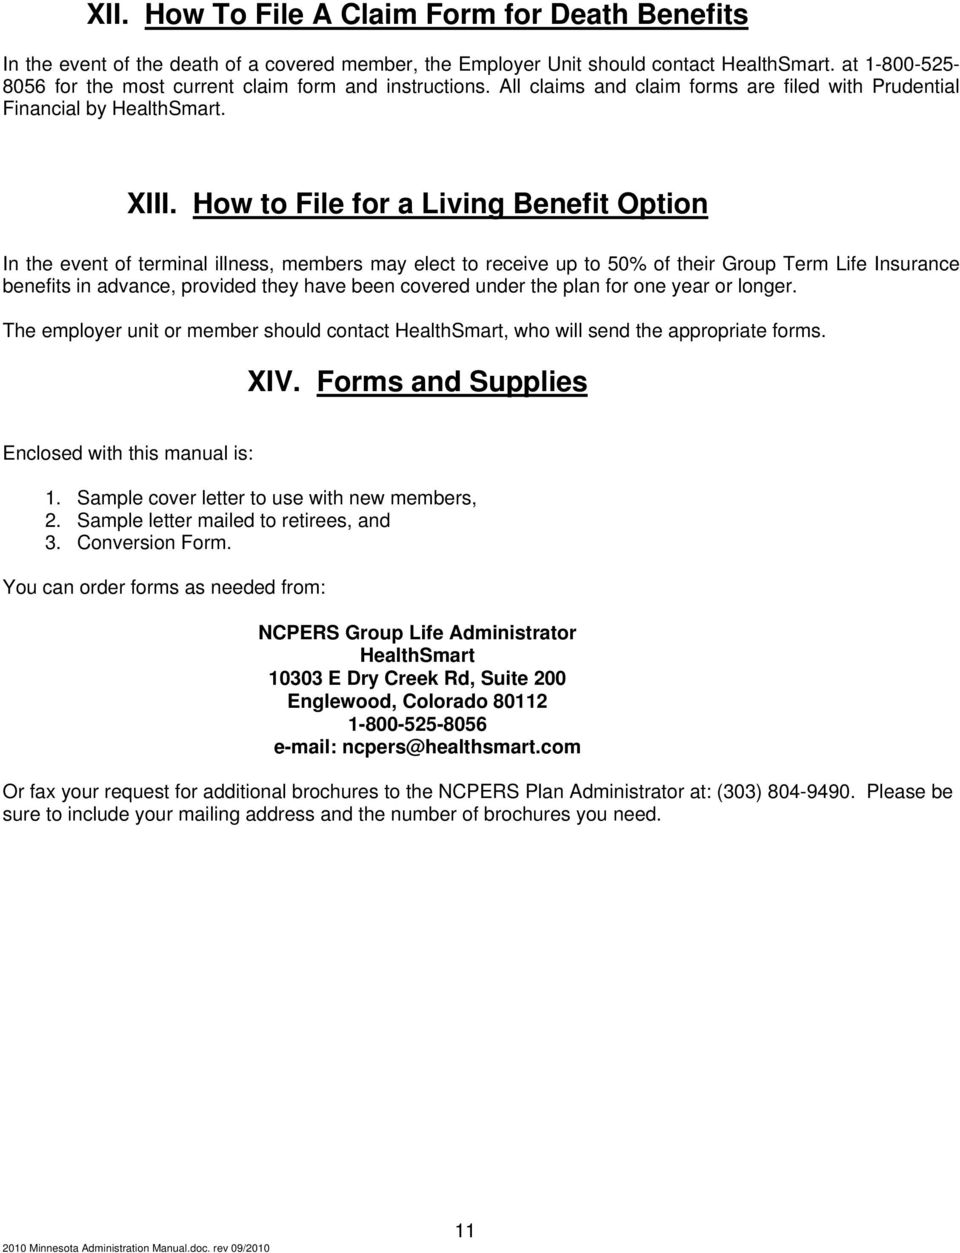 How To Administer Your Ncpers Group Life Insurance Program Pdf